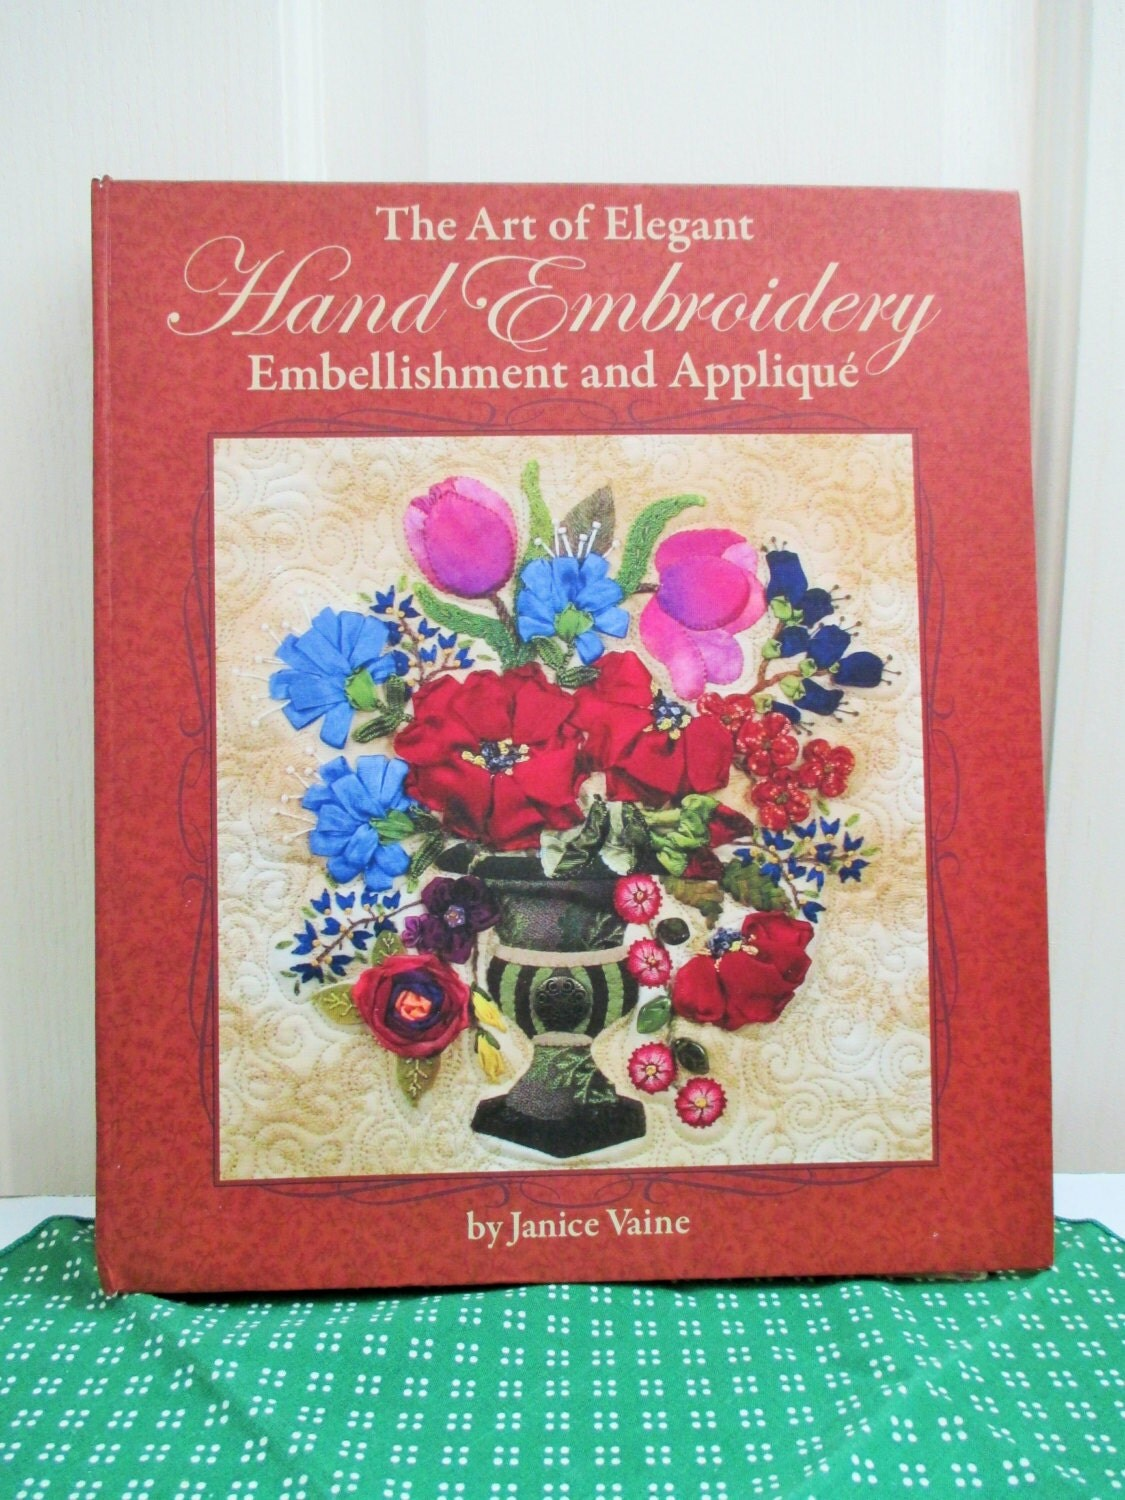 Embroidery book art of elegant hand stitches